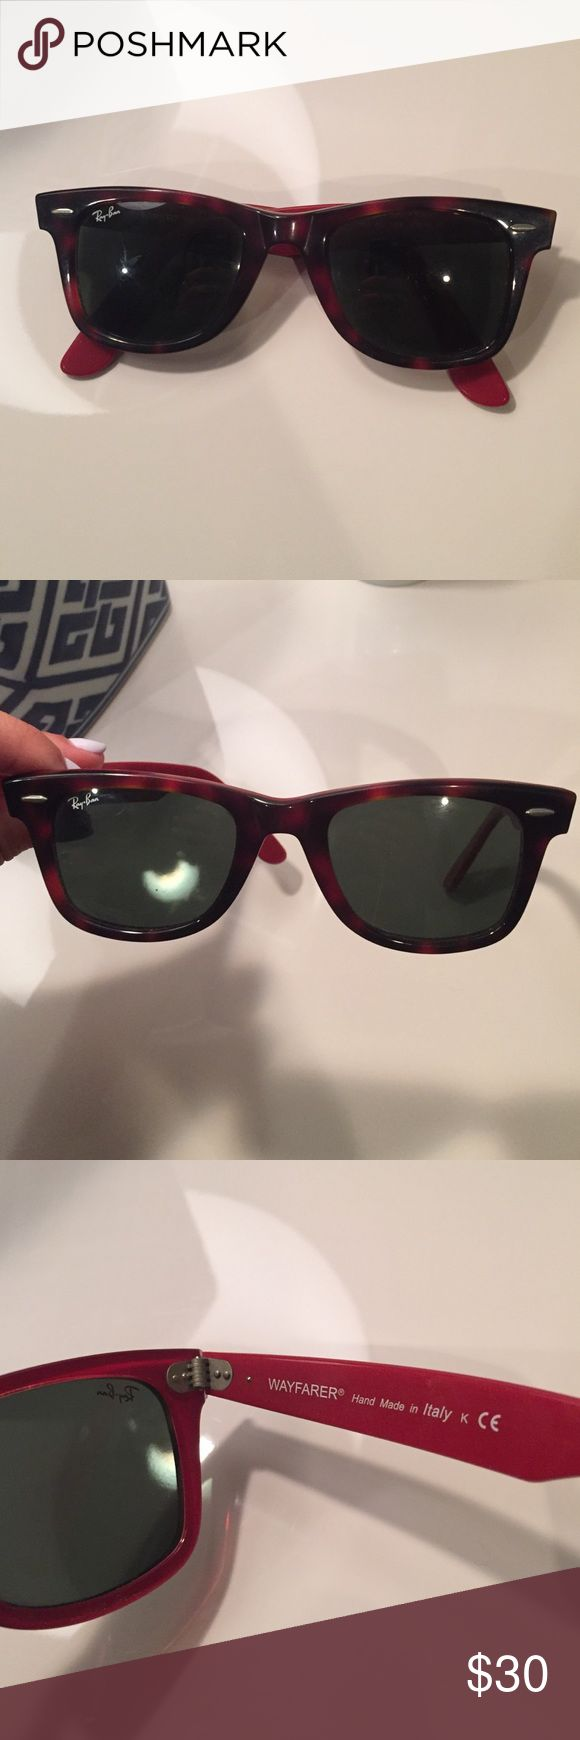 Ray ban wayfarer sunglassss Ray ban wayfarer sunglasses. Tortious hell outside with a red inside. In great condition. Ray-Ban Accessories Sunglasses